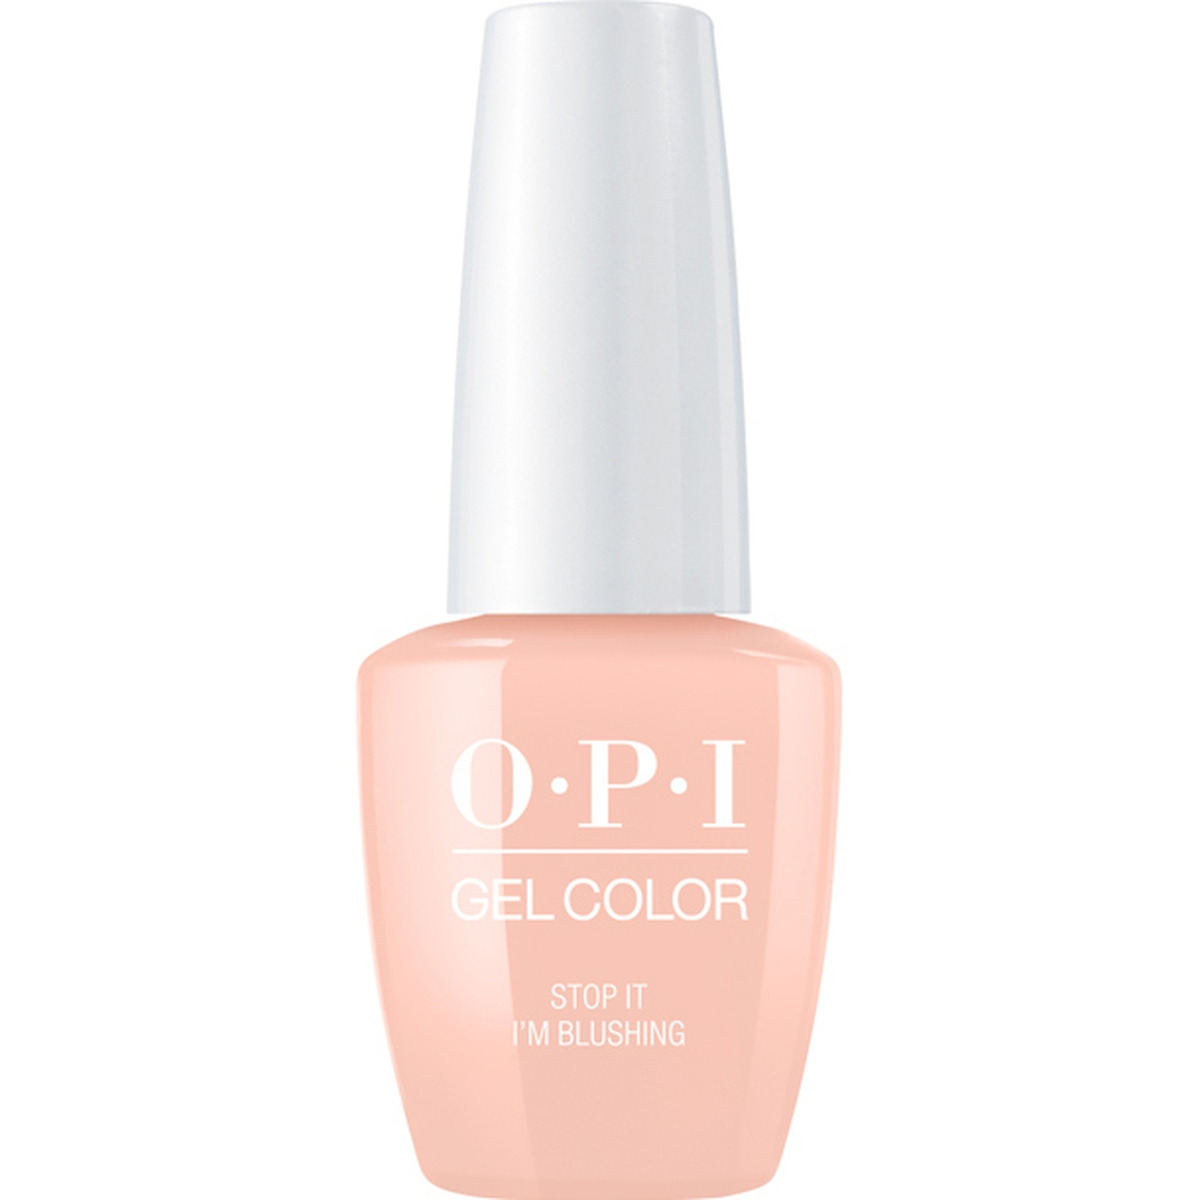 OPI Гель-лак GelColor Stop I am Blushing, 15 мл opi набор лаков measure up to color